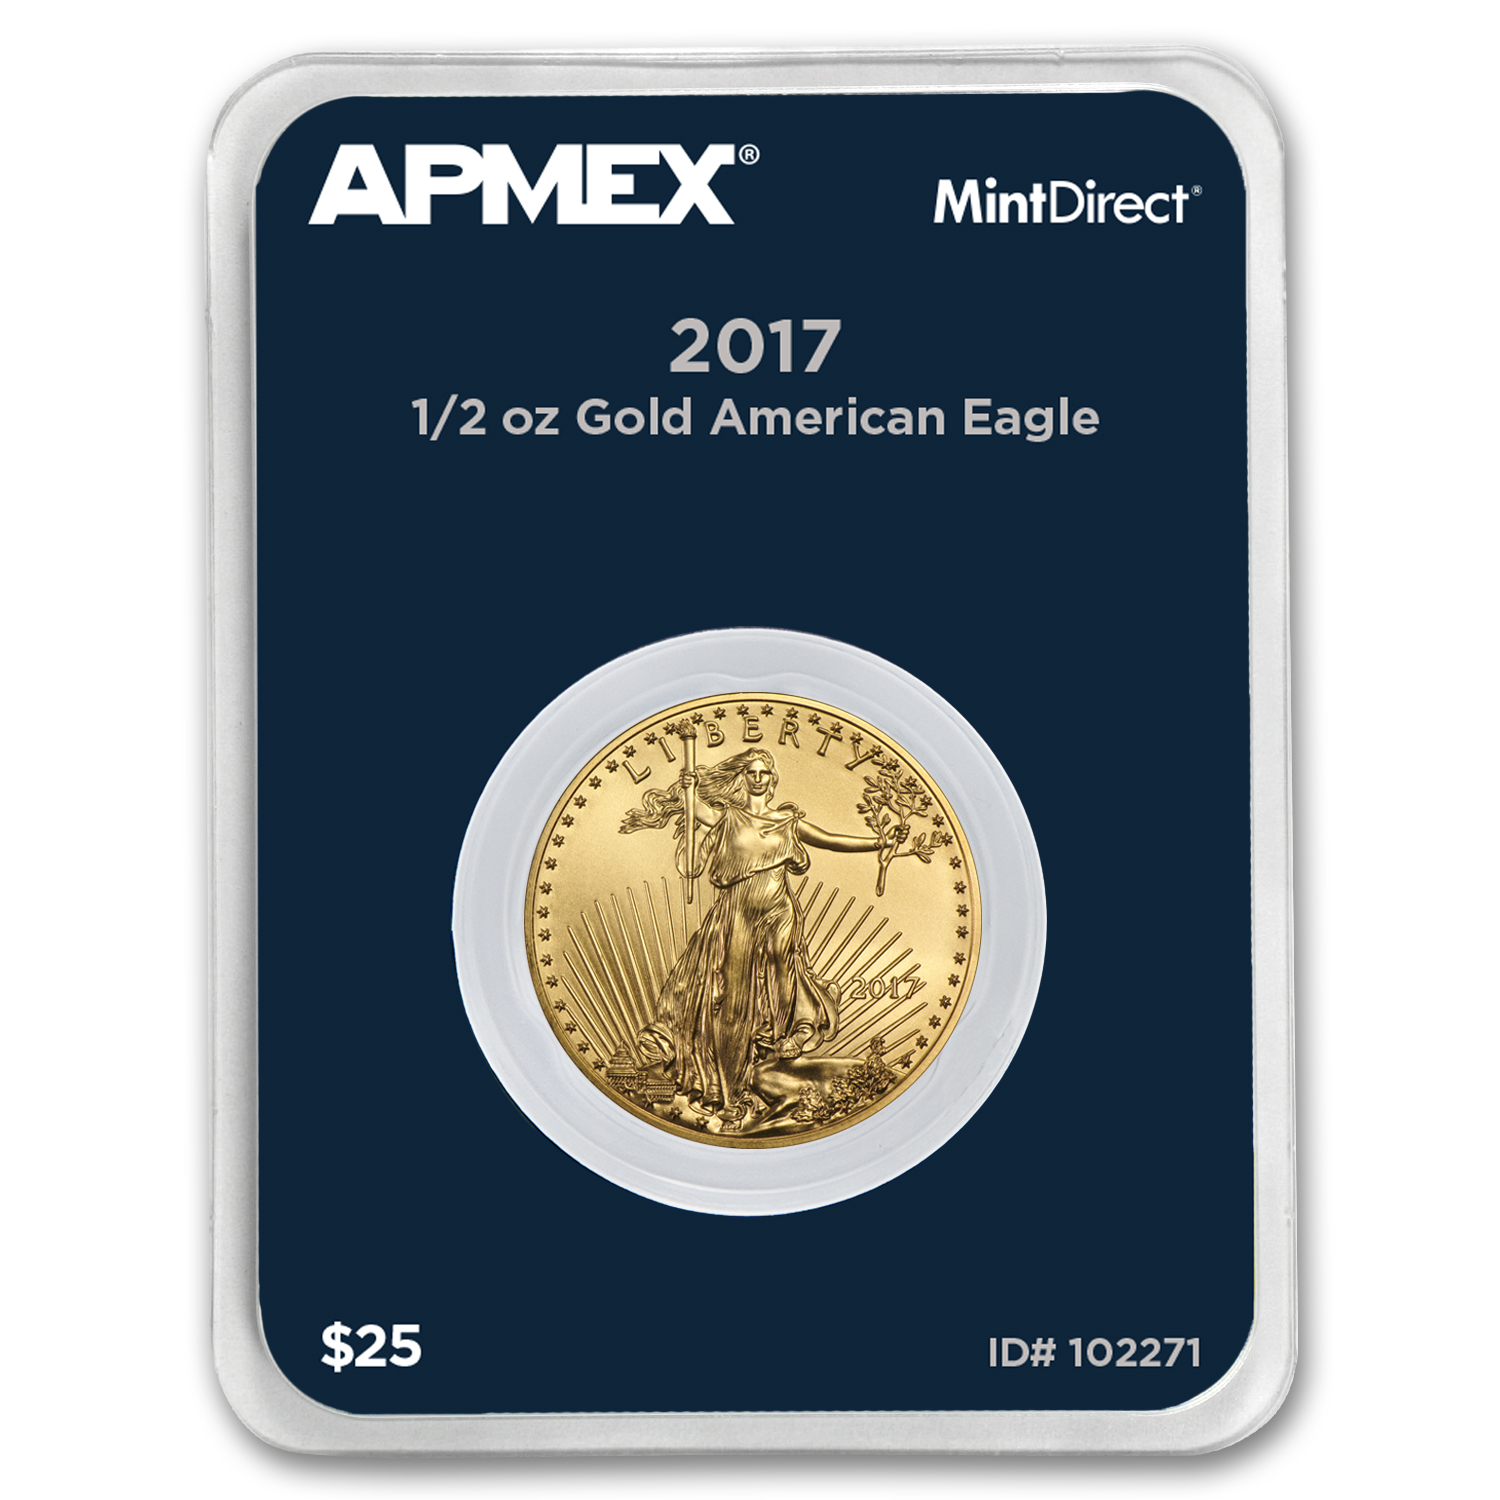 2017 1/2 oz Gold American Eagle (MintDirect® Single)